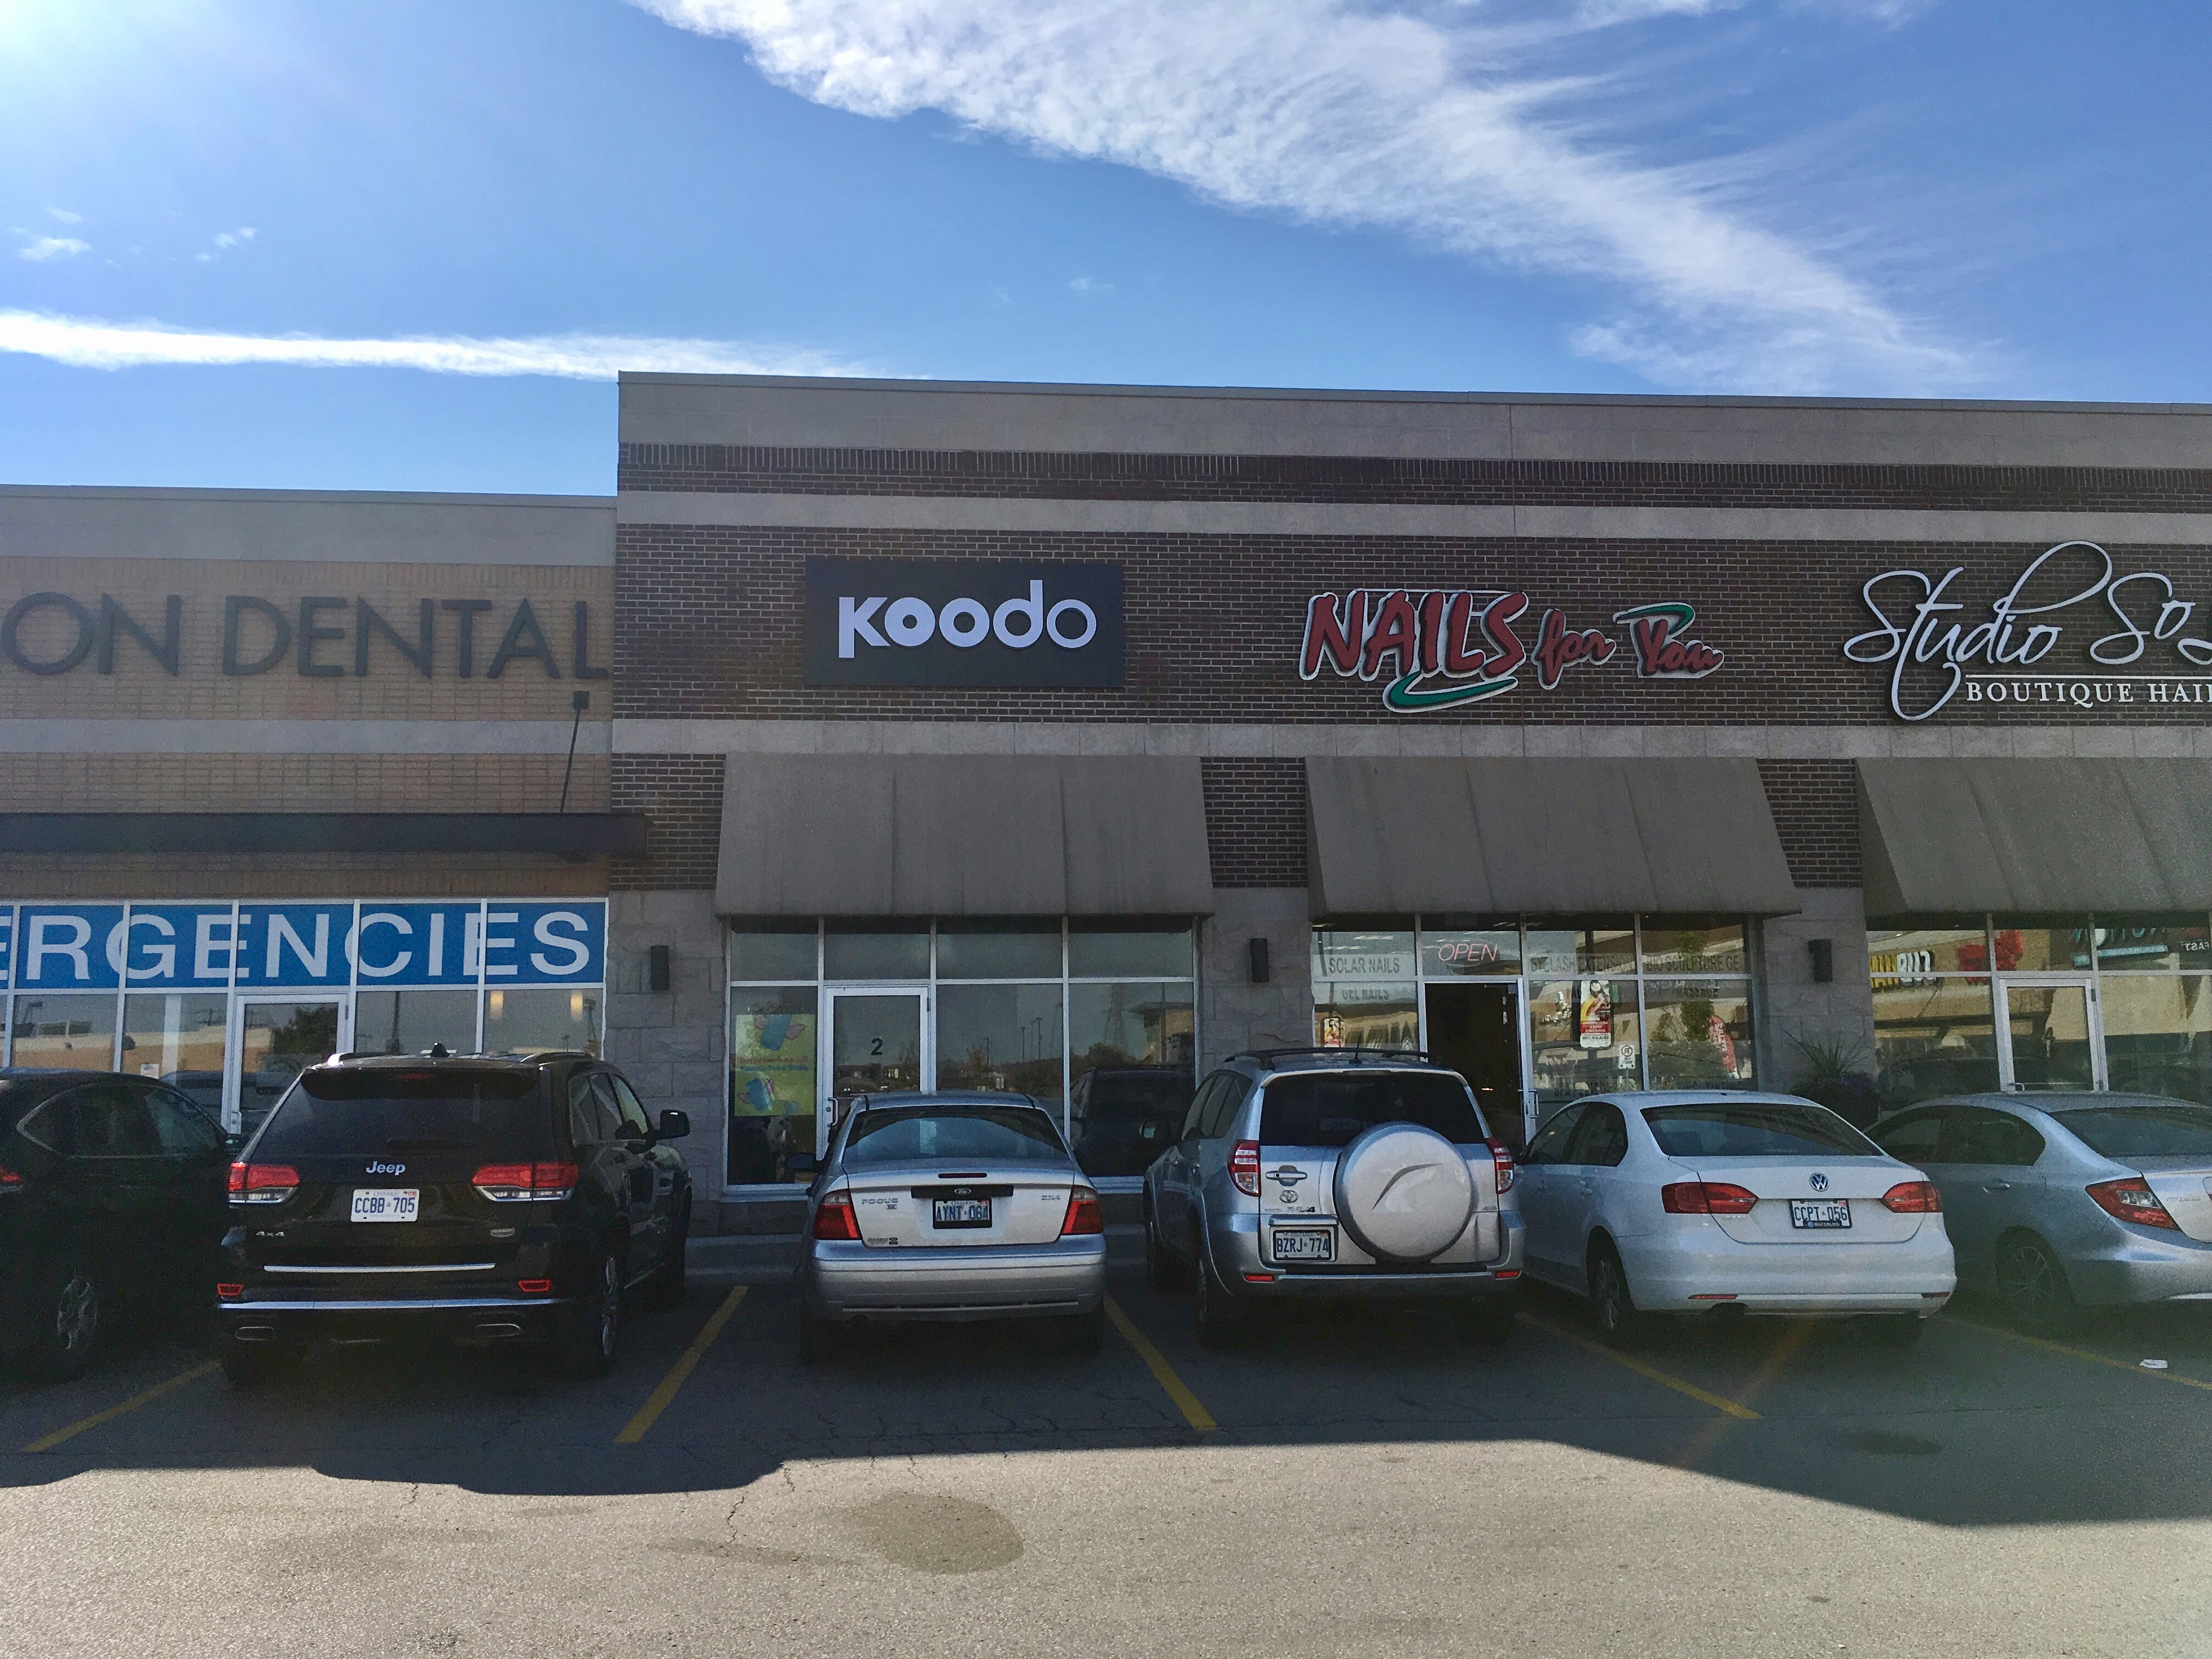 235 Ira Needles Boulevard (Unit 2), Kitchener | Retail Unit Available